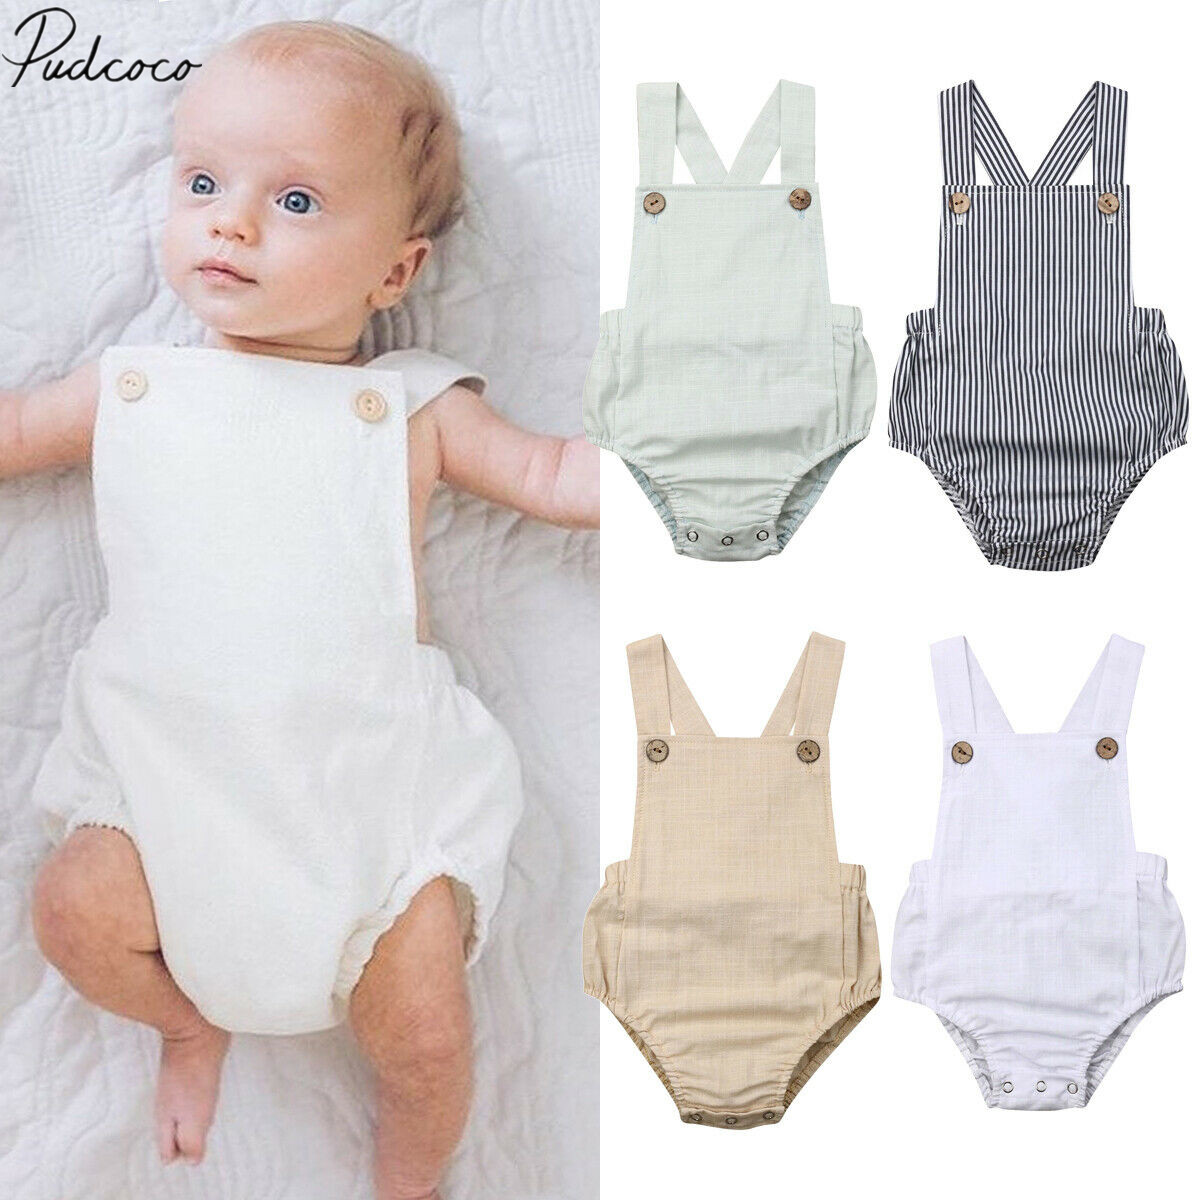 Supply Princess Newborn Baby Girls Patchwork Romper Summer Lace Peter Pan Collar Floral Jumpsuit Baby Girl Cotton Clothes Sunsuit0-24m Rompers Mother & Kids